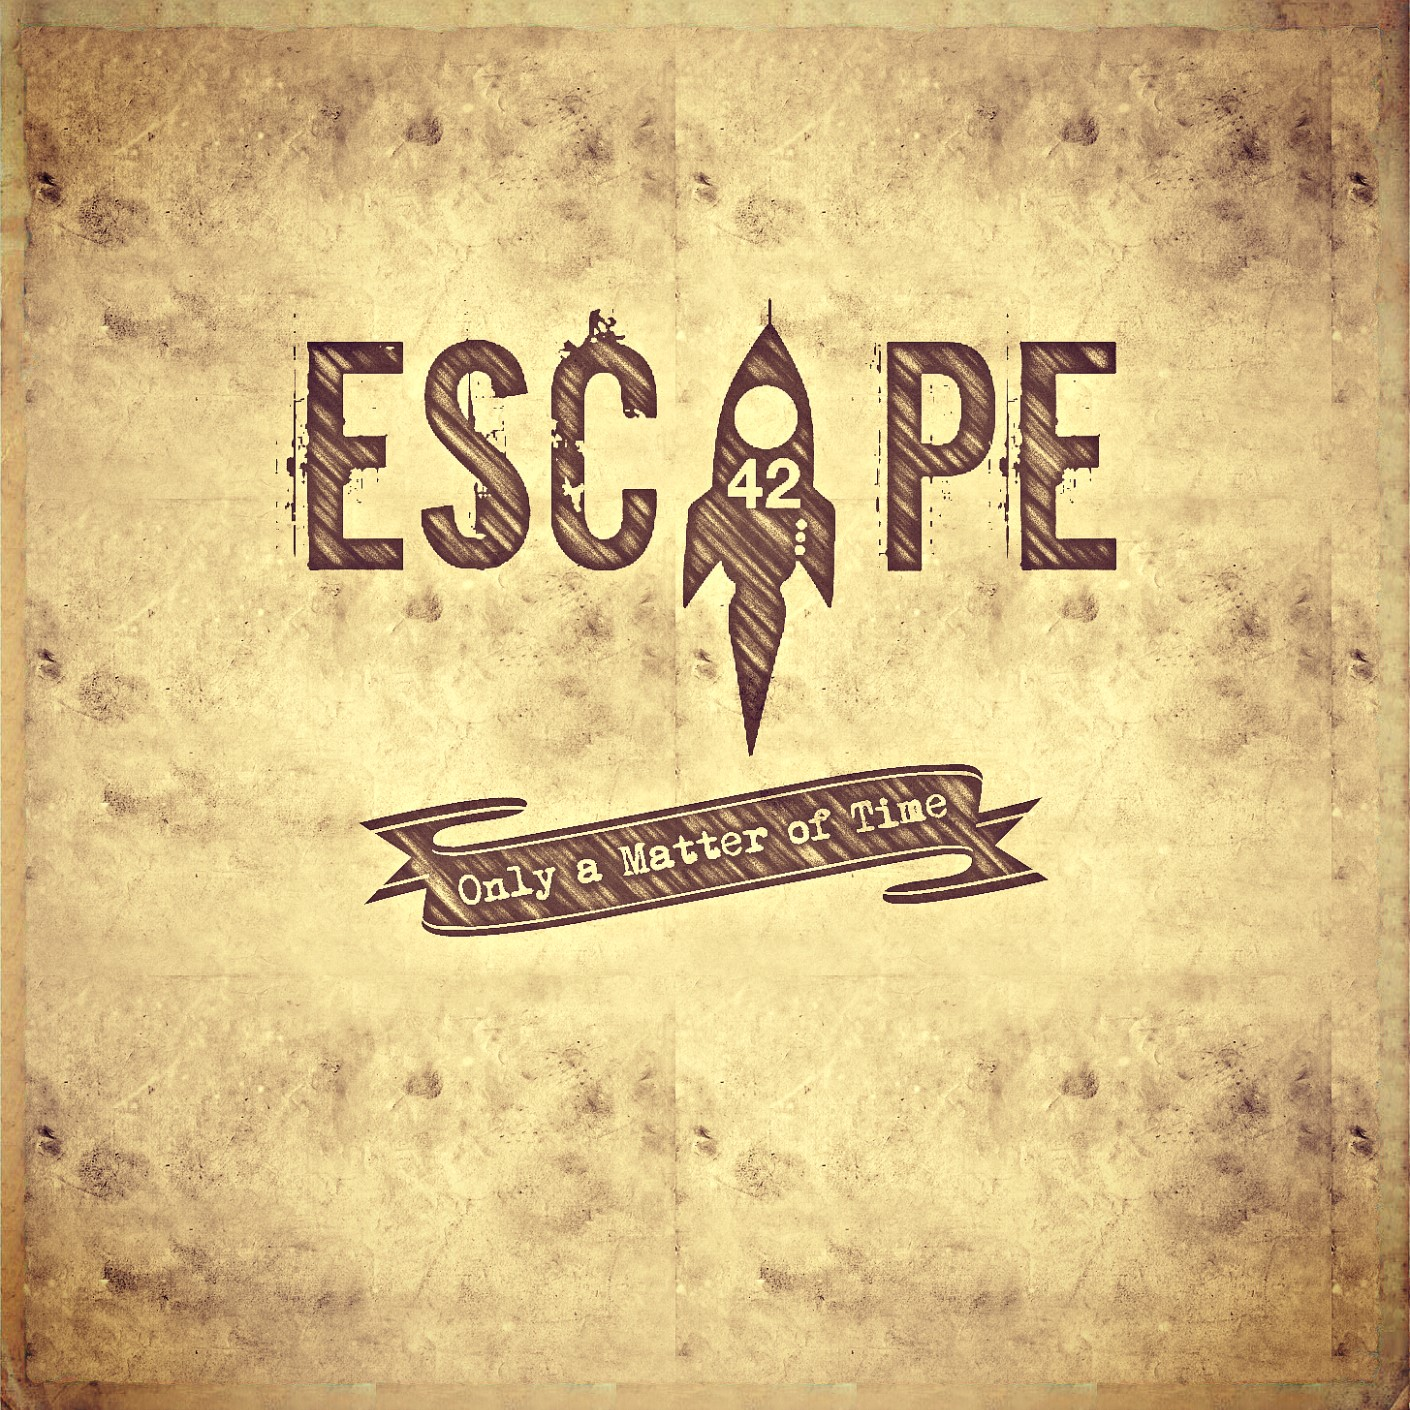 escape-42-ep-cover.jpg